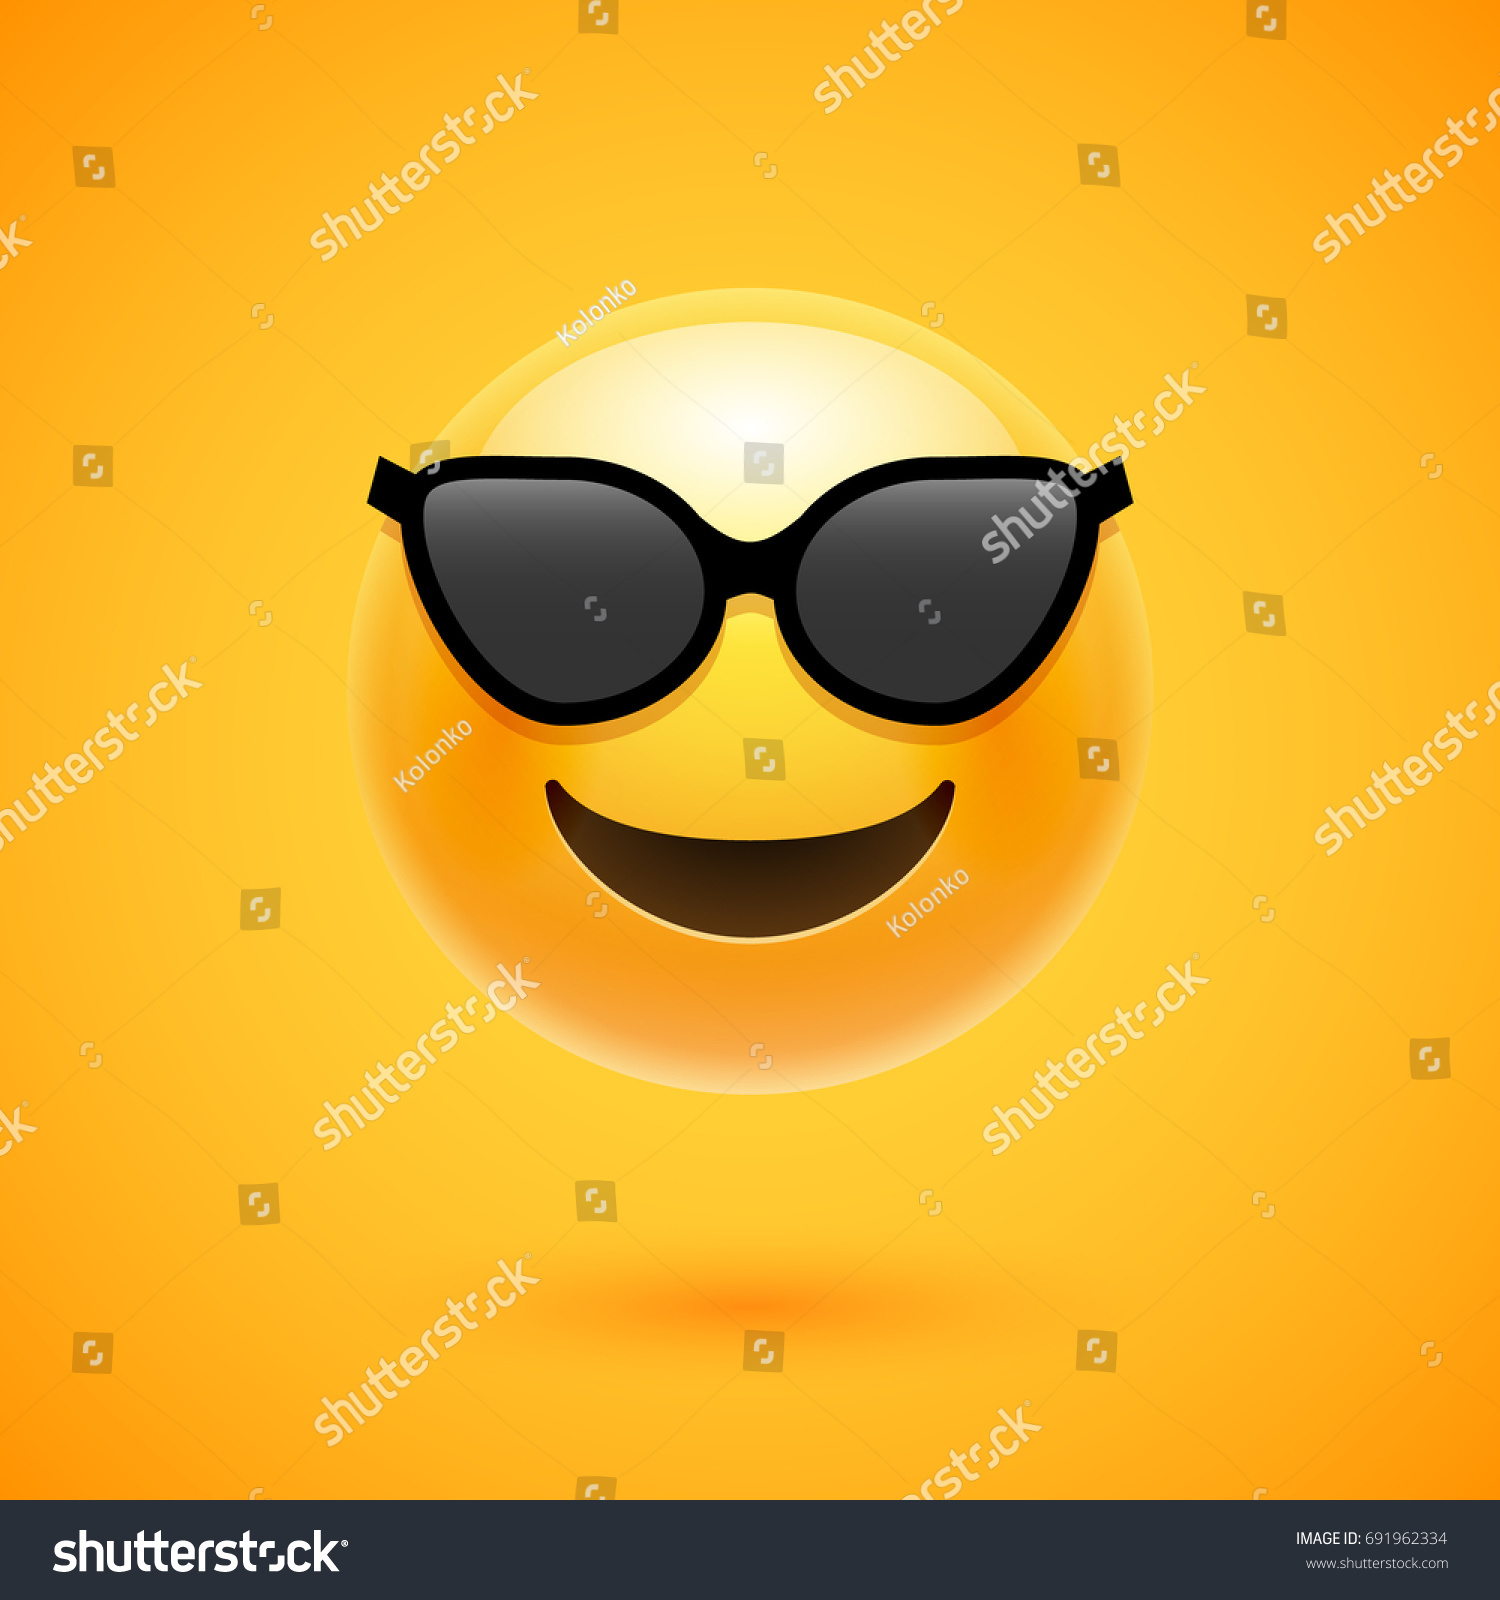 8dd469603b5 Smiling face with sunglasses - pill shaped yellow emoji - emoticon with smiling  face wearing dark sunglasses that is used to denote a sense of cool